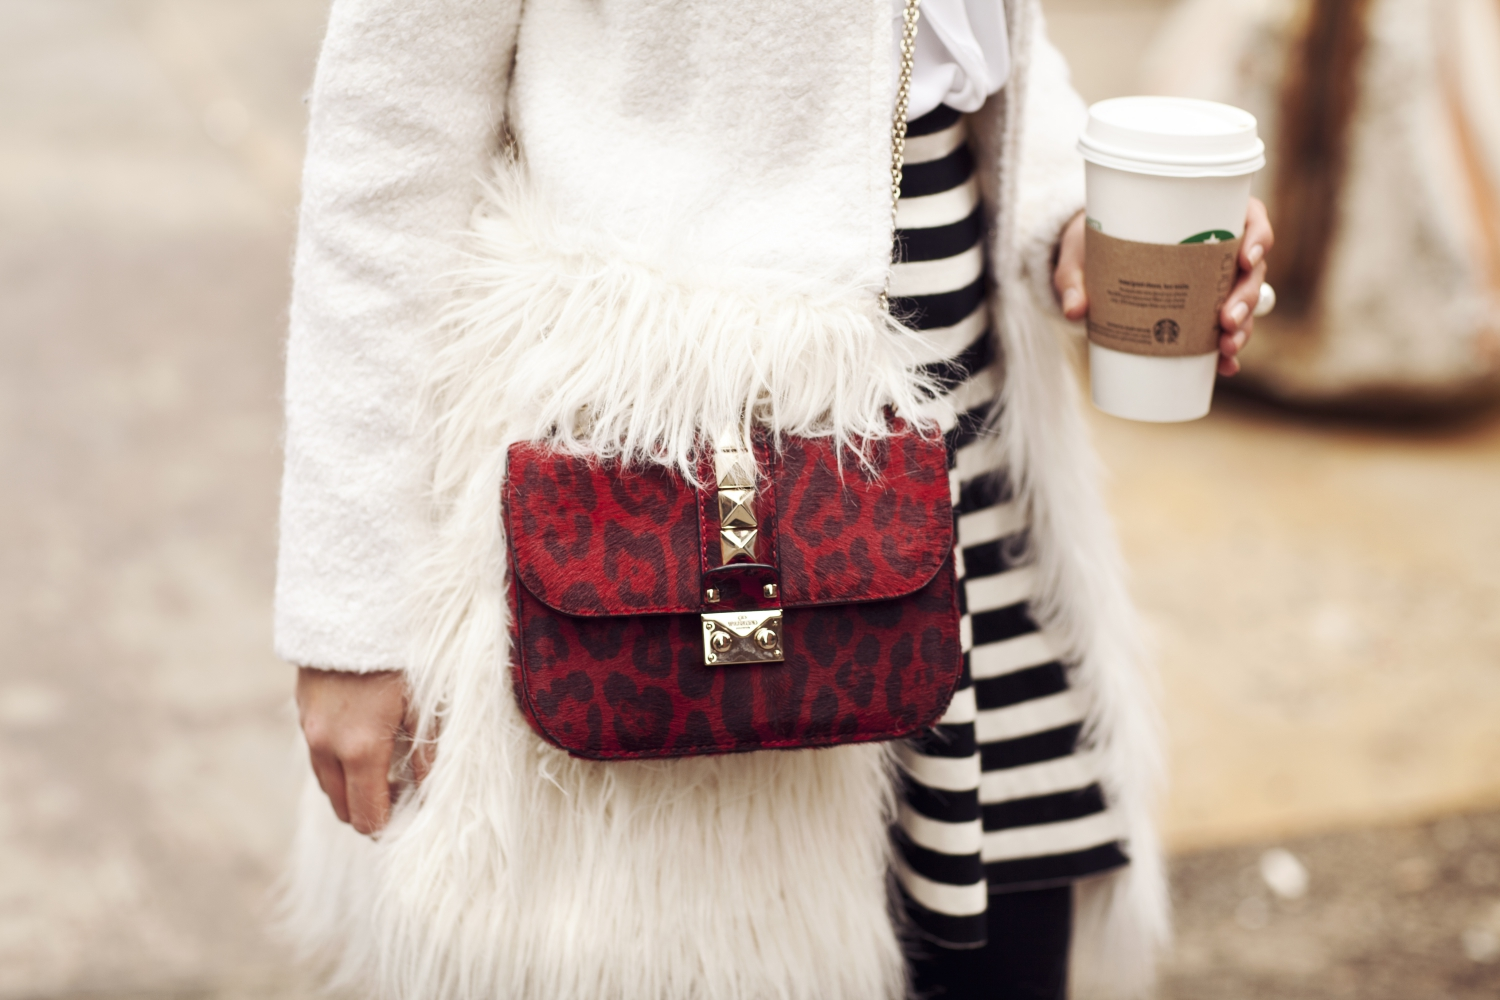 new-york-fashion-week-outfit-winter-2015-valentino-garavani-rockstud-bag